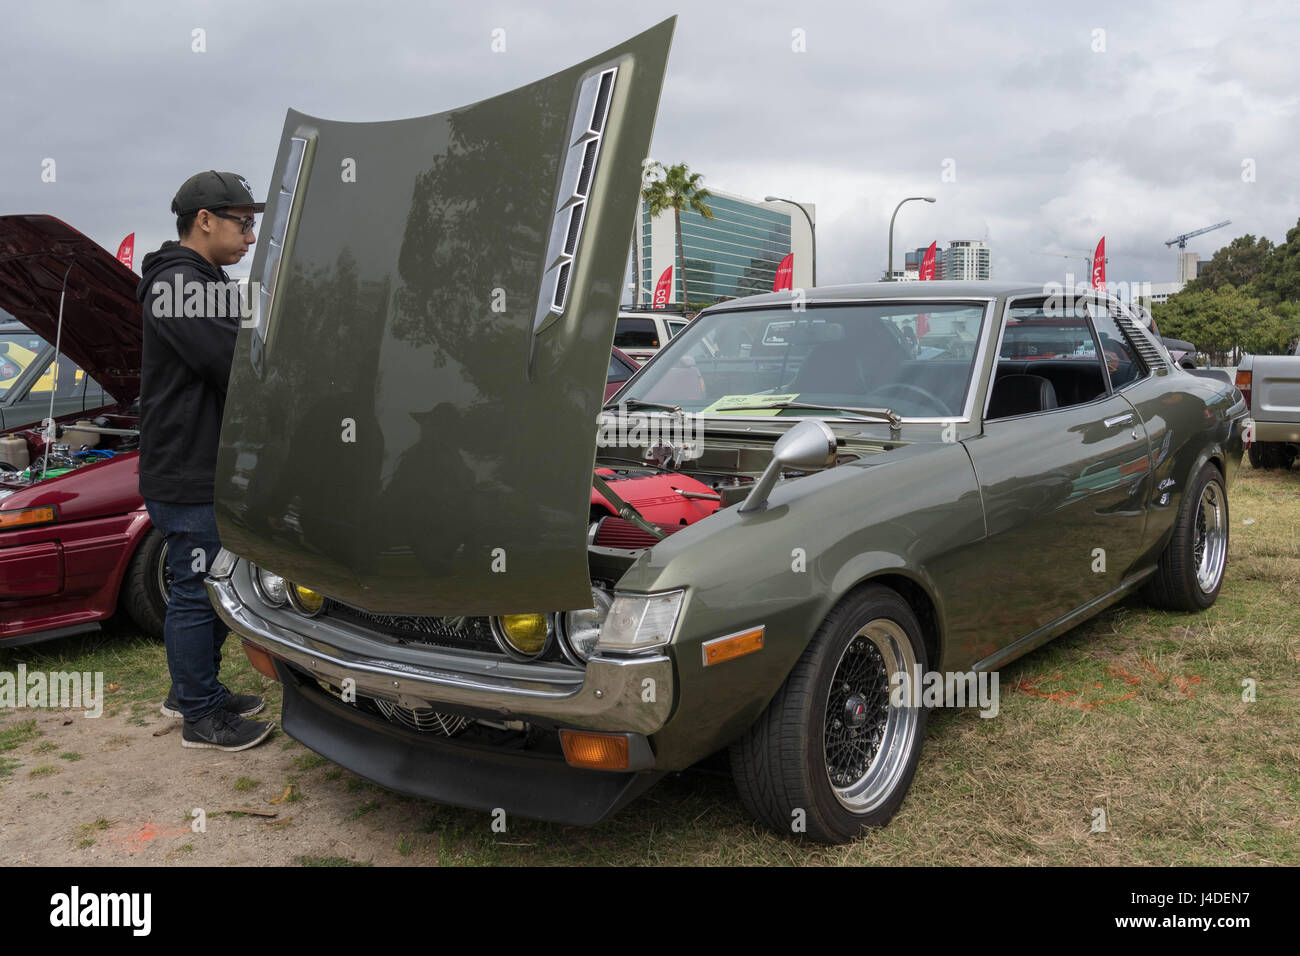 Toyota Celica Stock Photos Images Alamy 1973 Gt Liftback Long Beach Usa May 6 2017 On Display During The